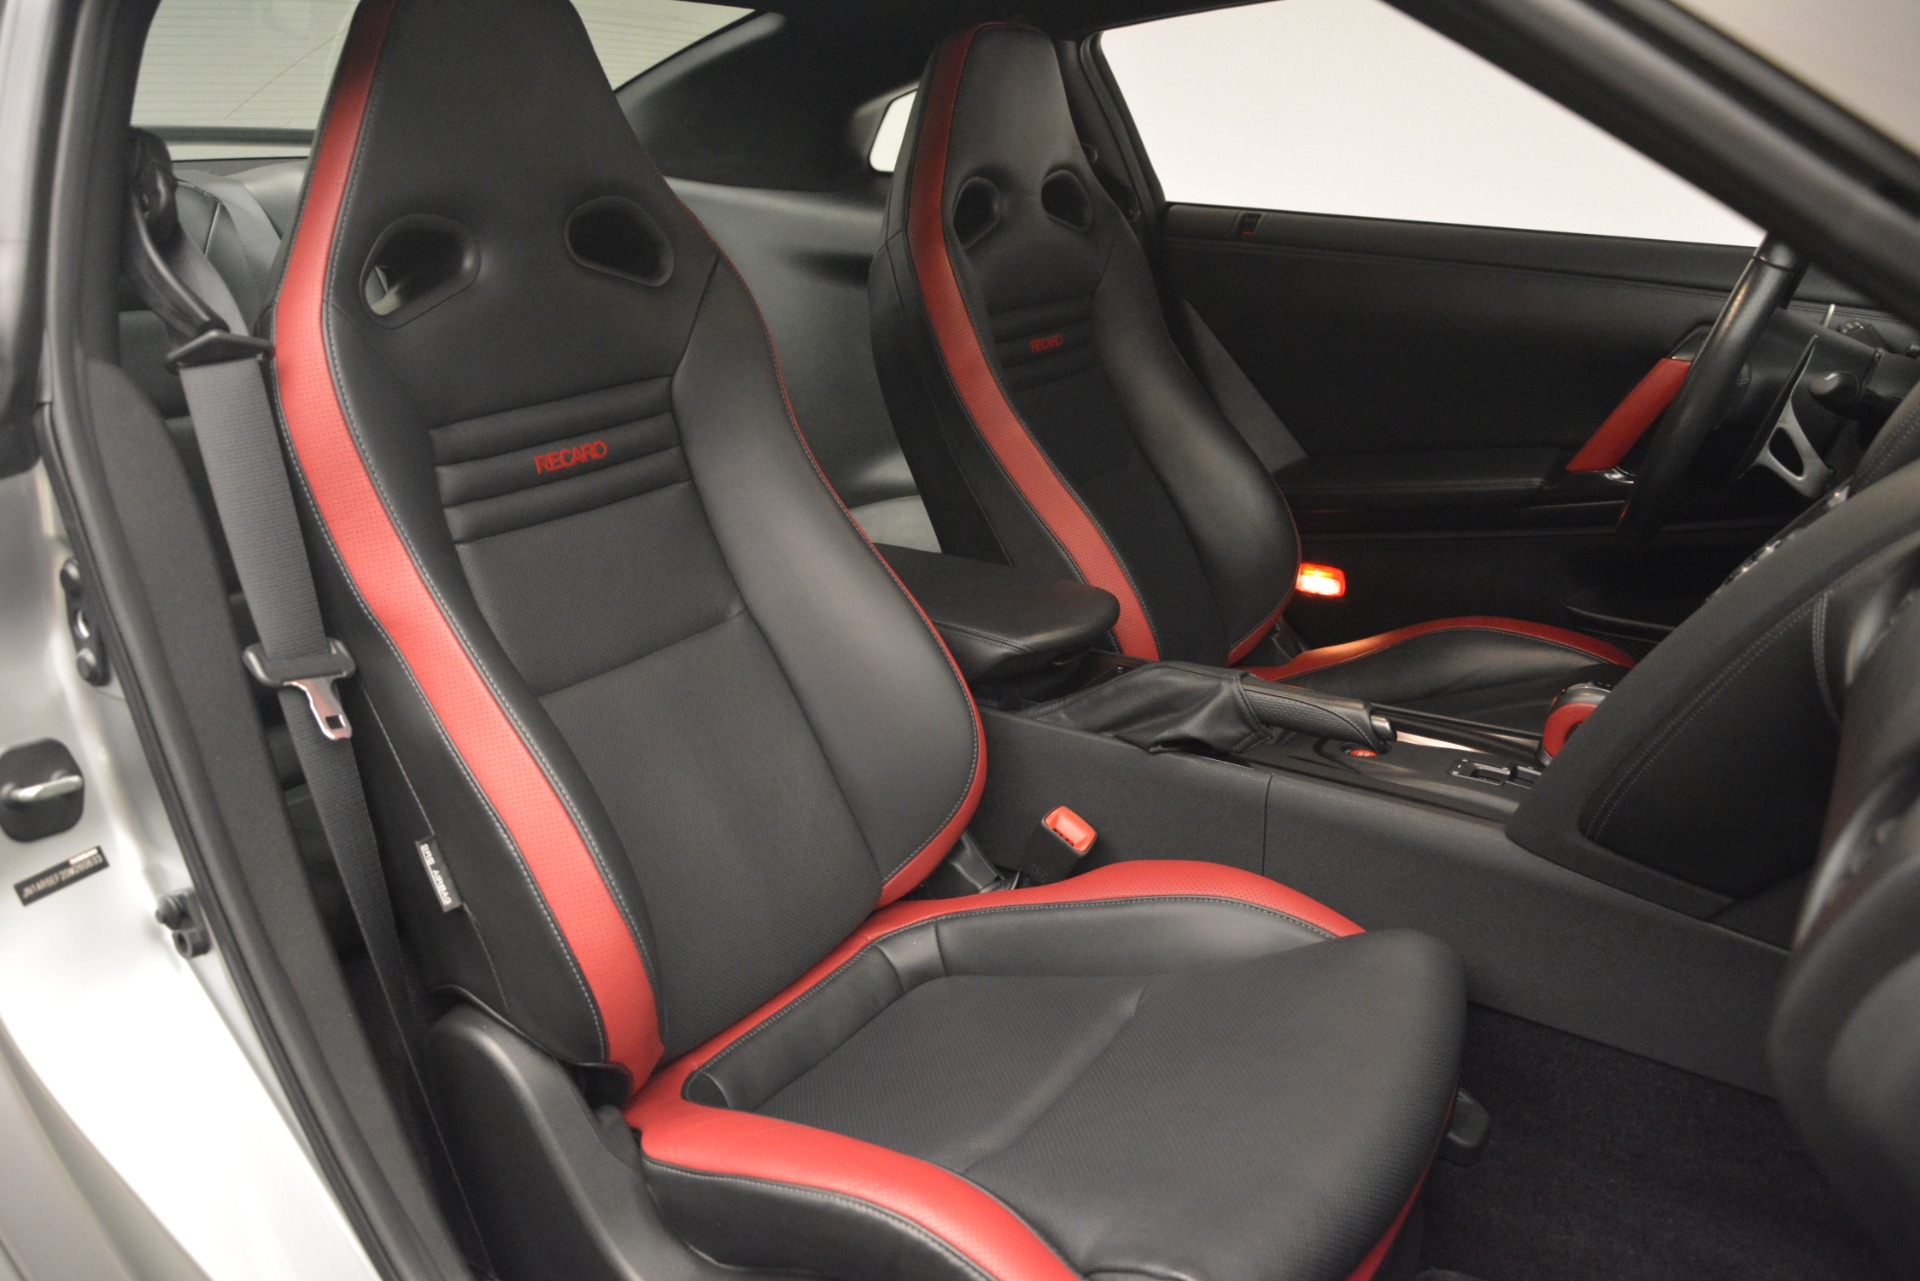 Used 2013 Nissan GT-R Black Edition For Sale In Greenwich, CT 3028_p22